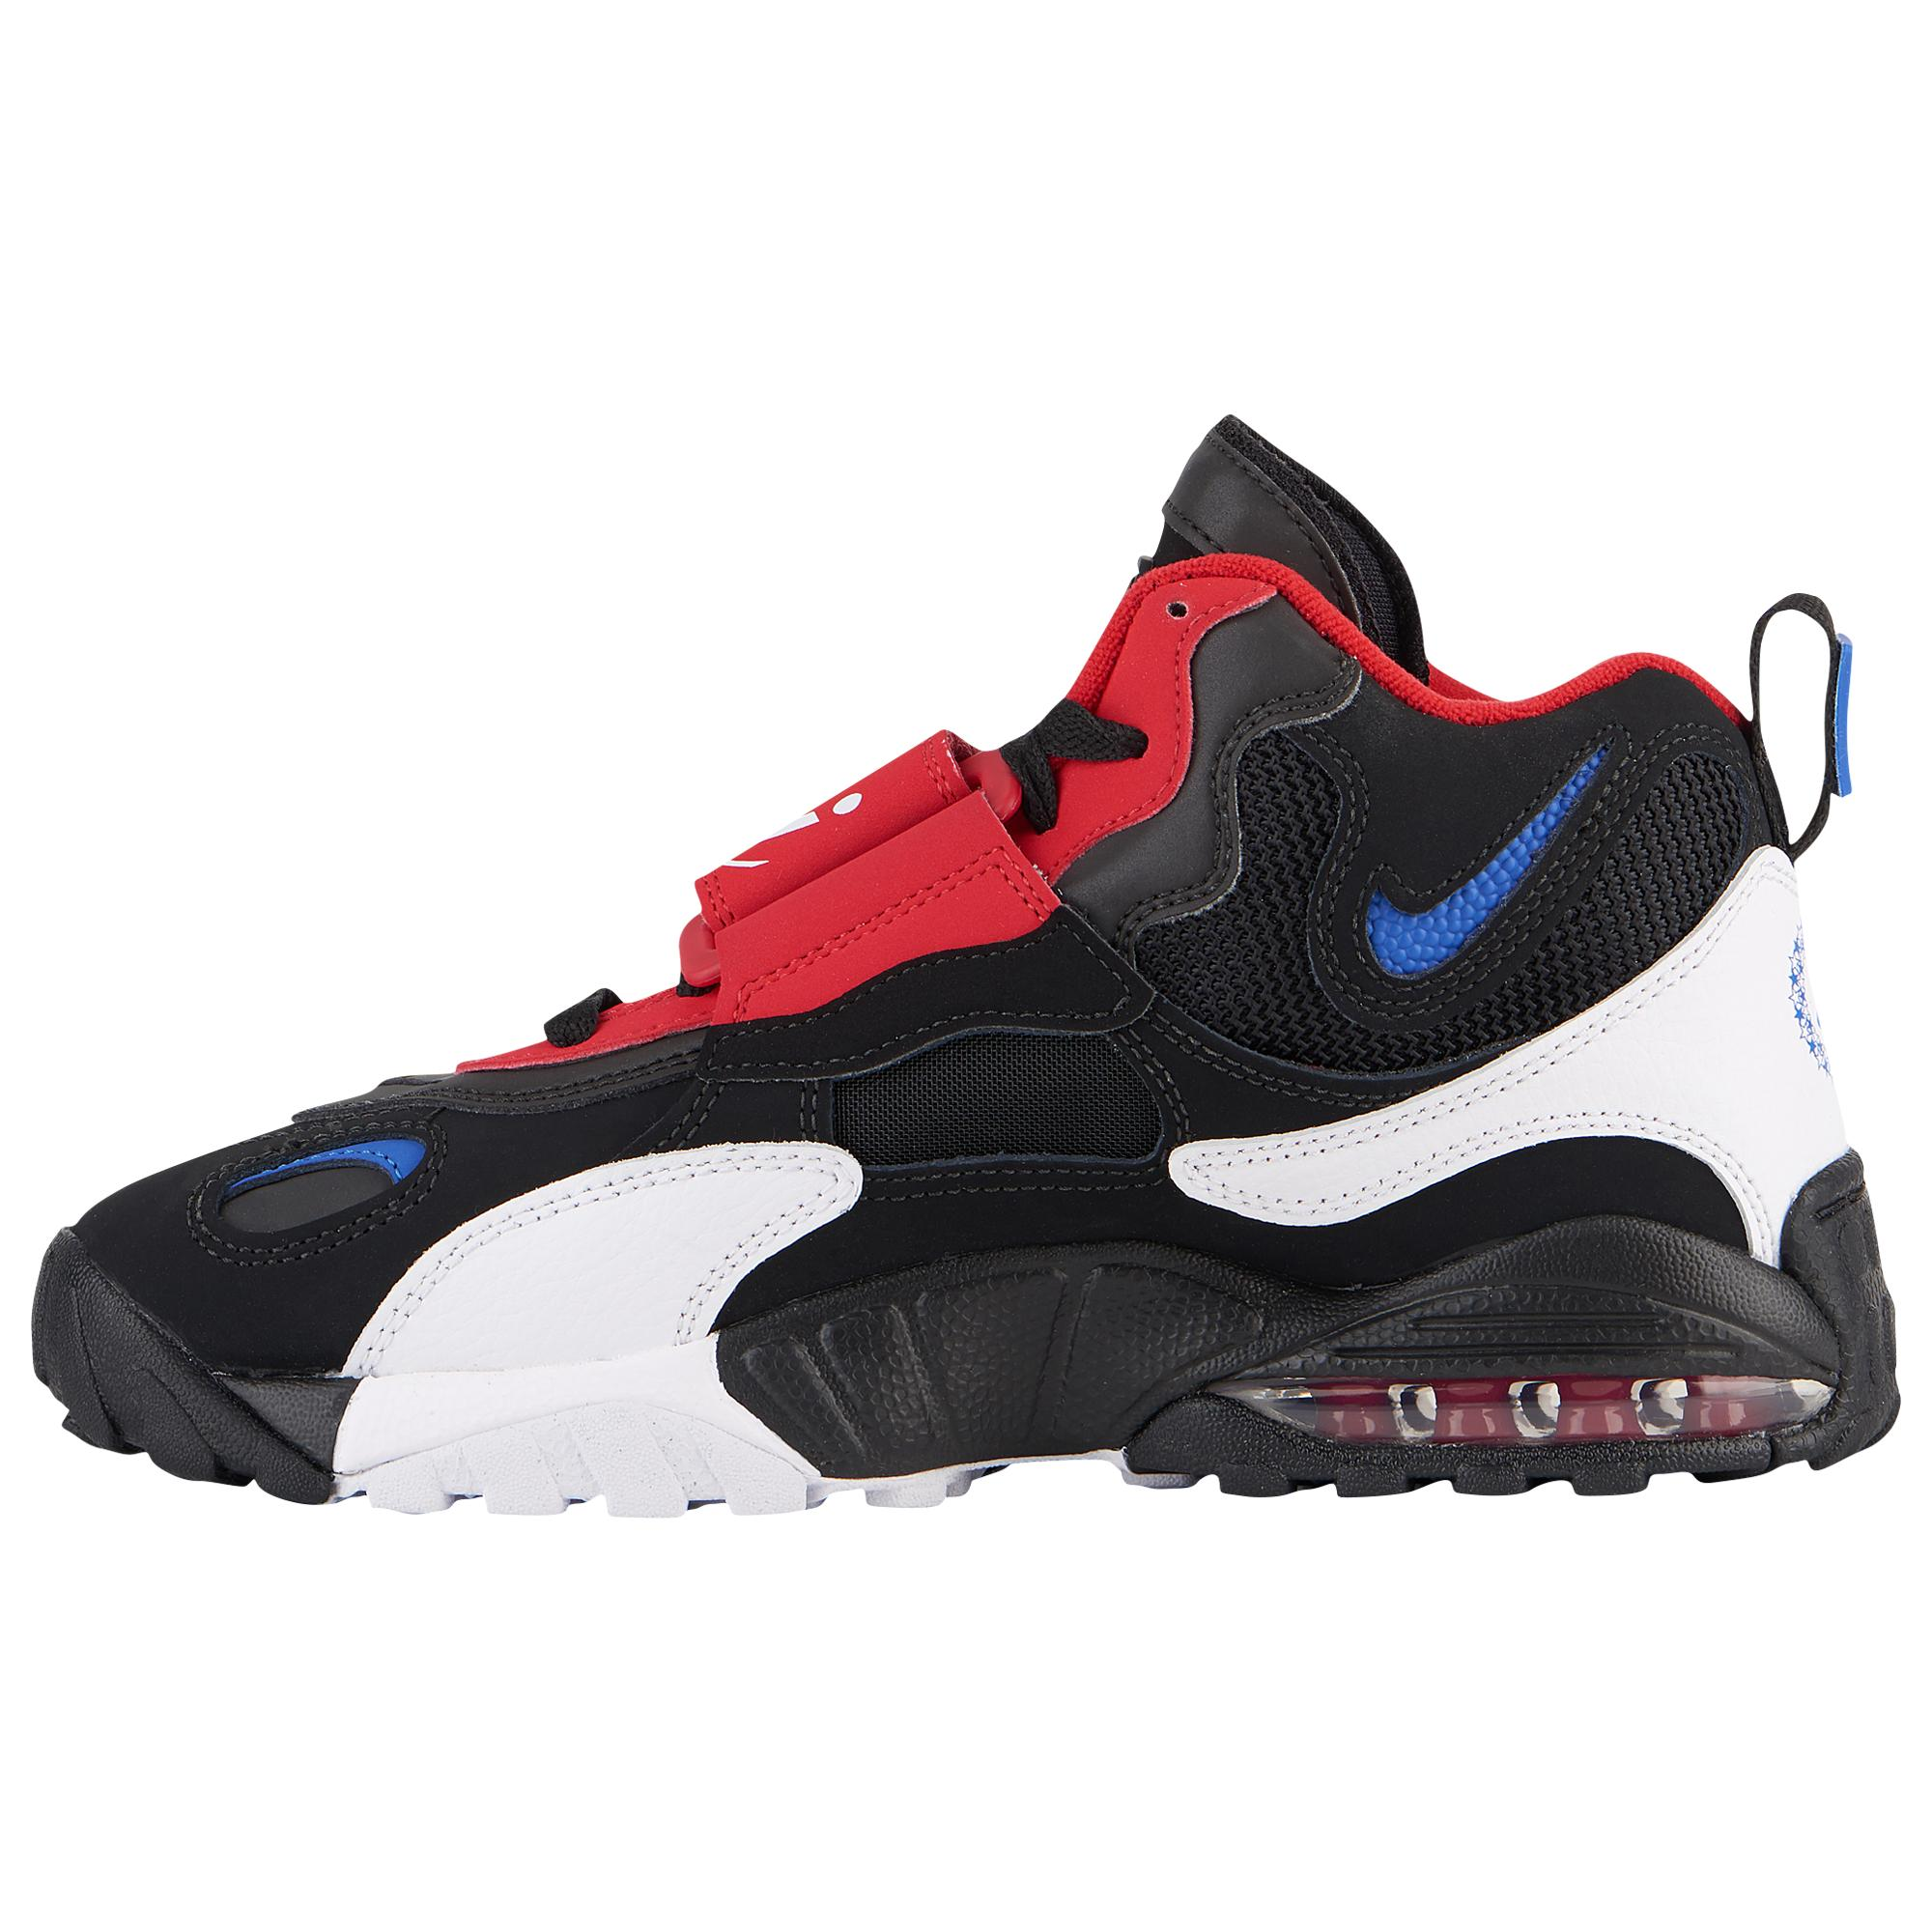 Nike Leather Air Max Speed Turf Training Shoes in Red for Men - Lyst